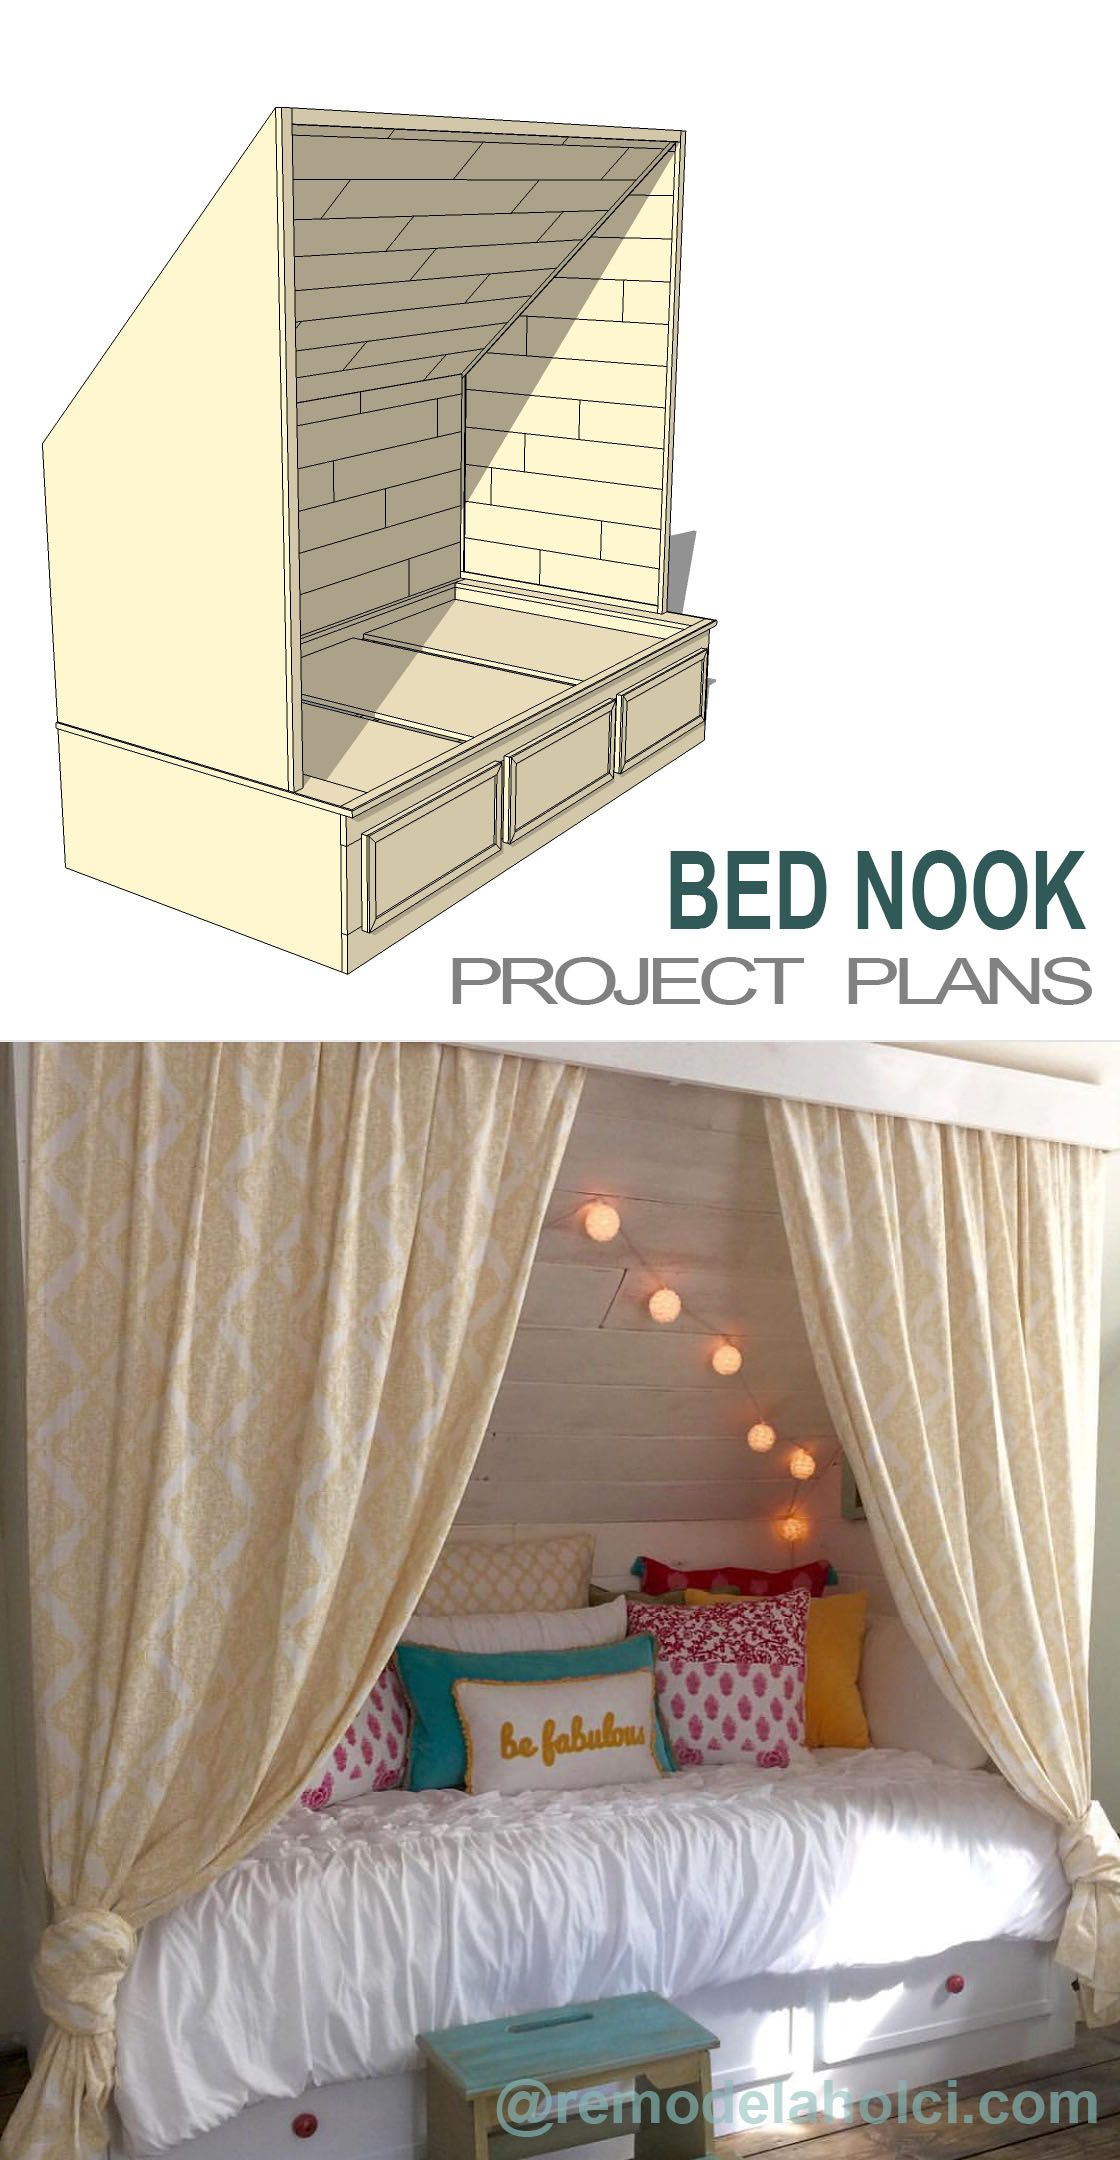 Remodelaholic | Beautiful Built-In Bed Nook with Storage Drawers